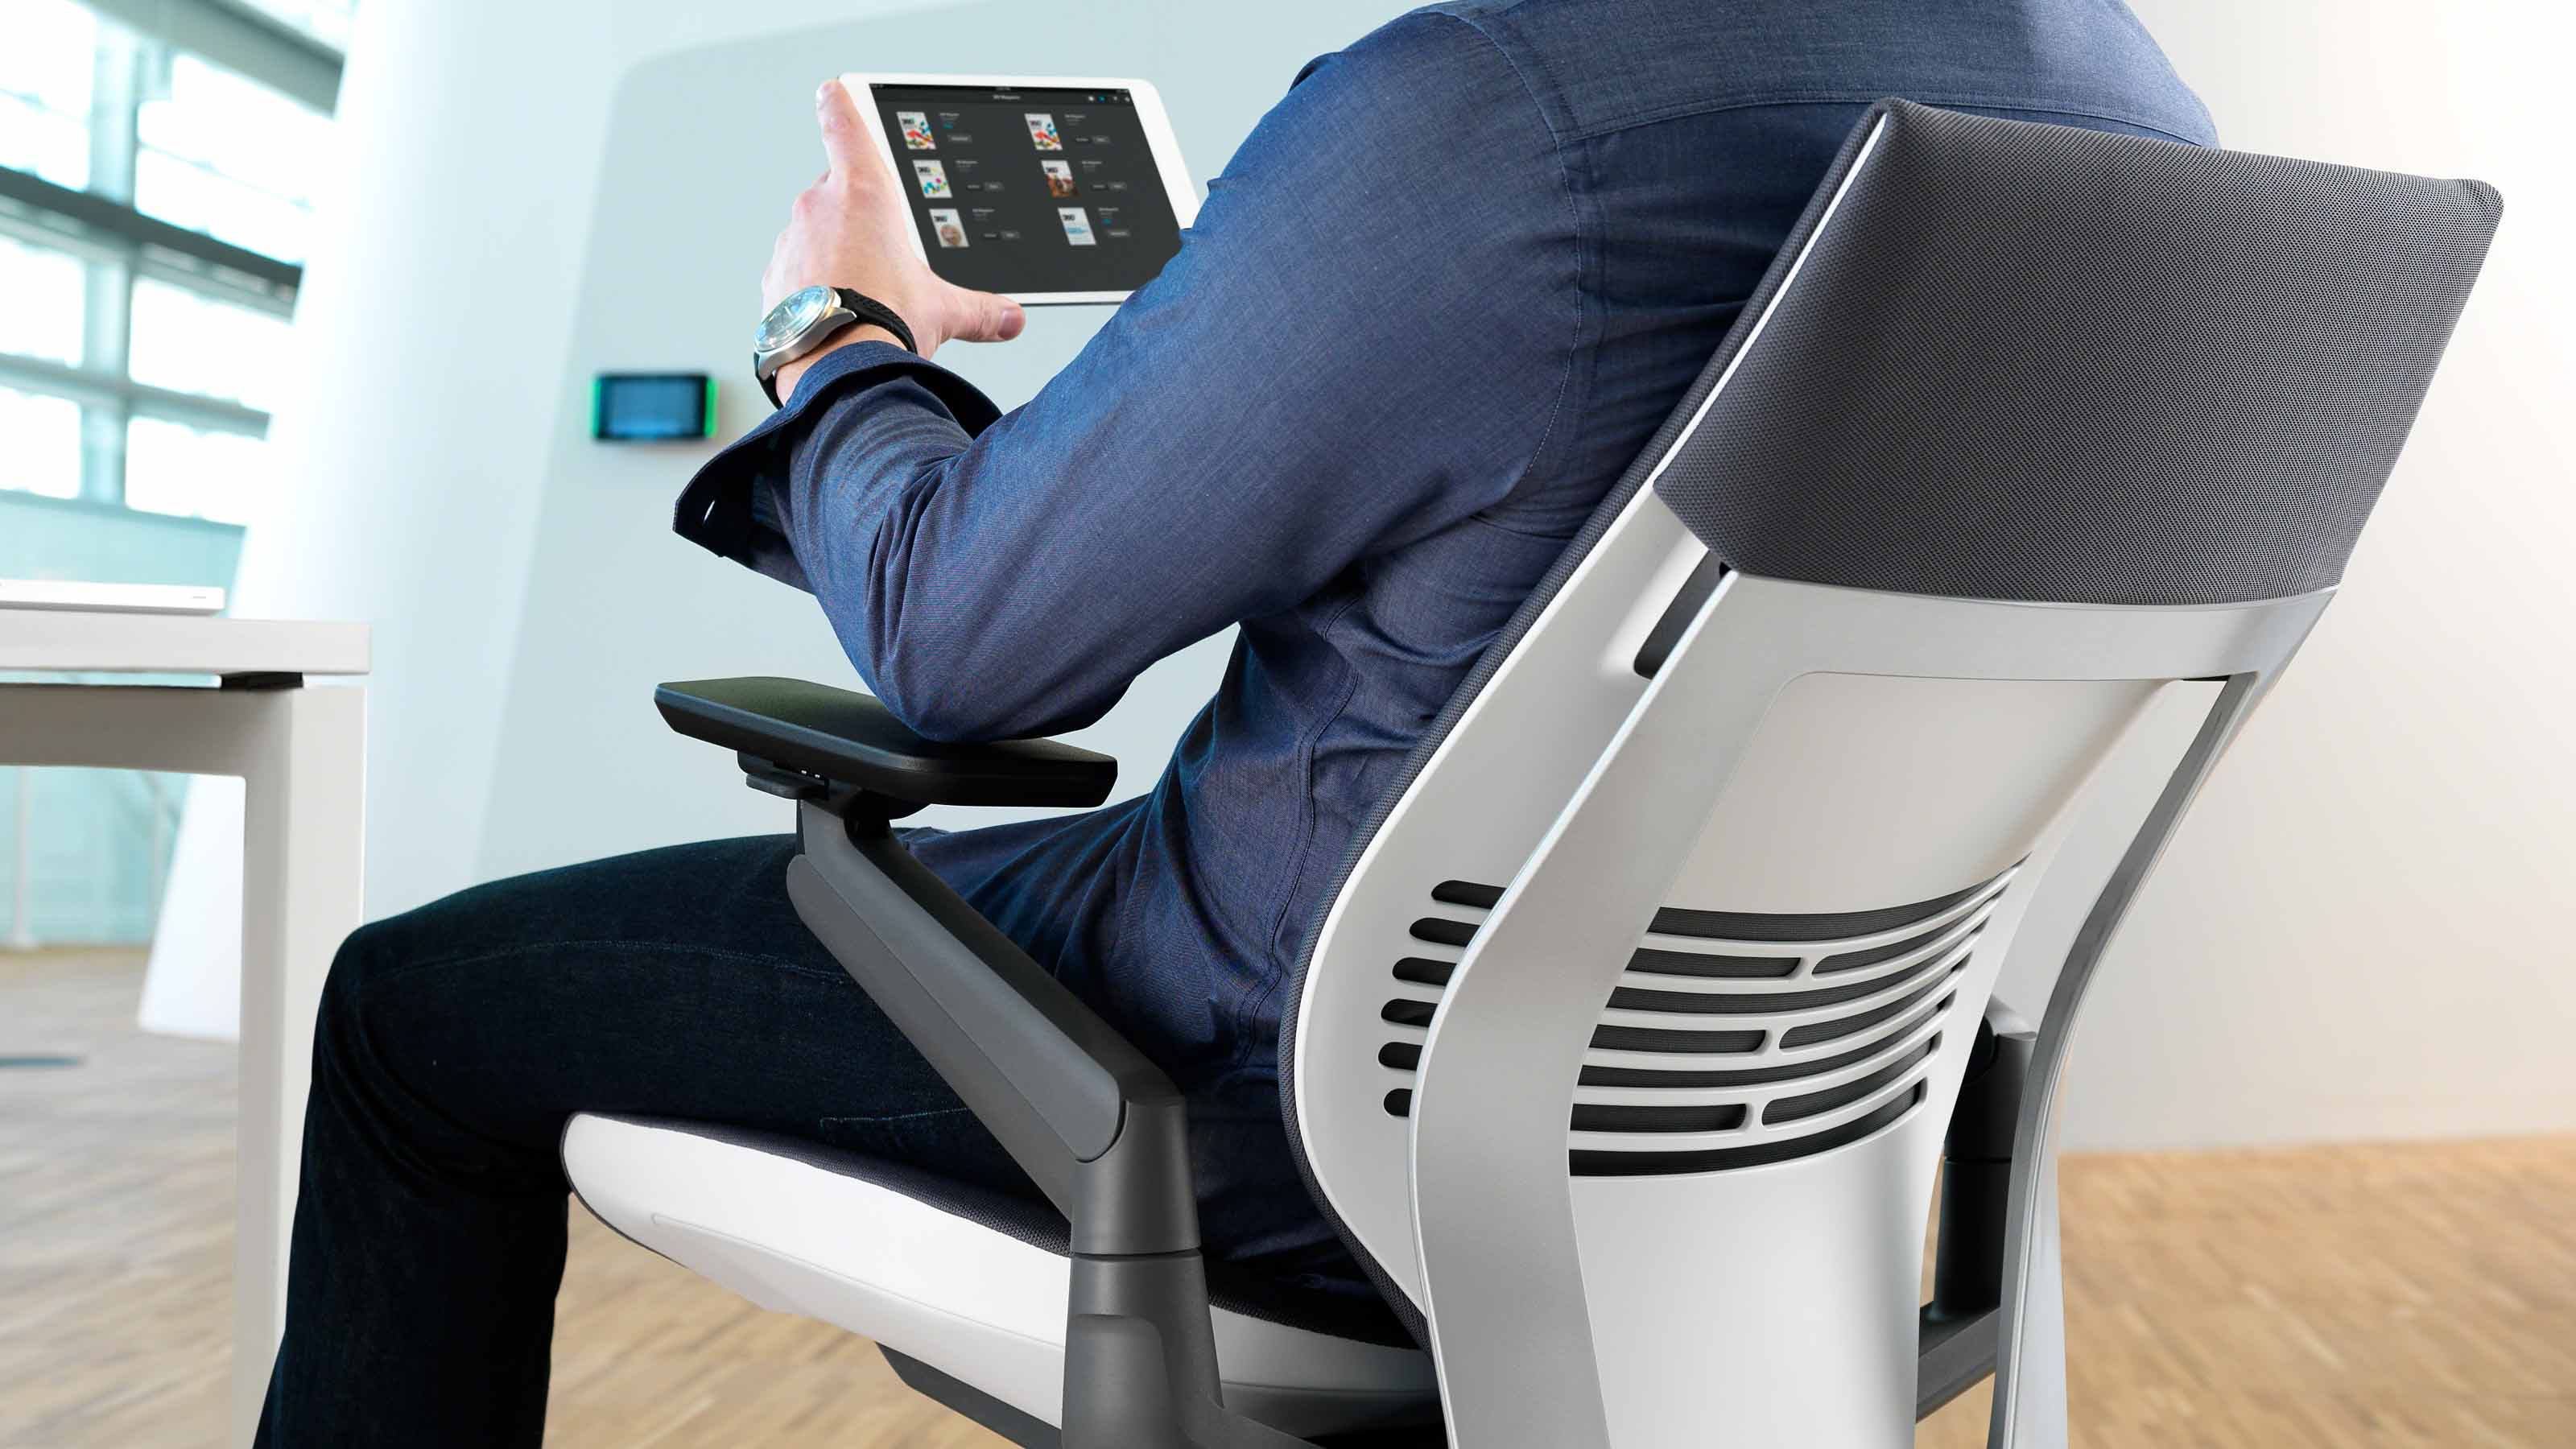 https://images.steelcase.com/image/upload/v1415739054/www.steelcase.com/gesture-chair-tablet-13-0004200.jpg